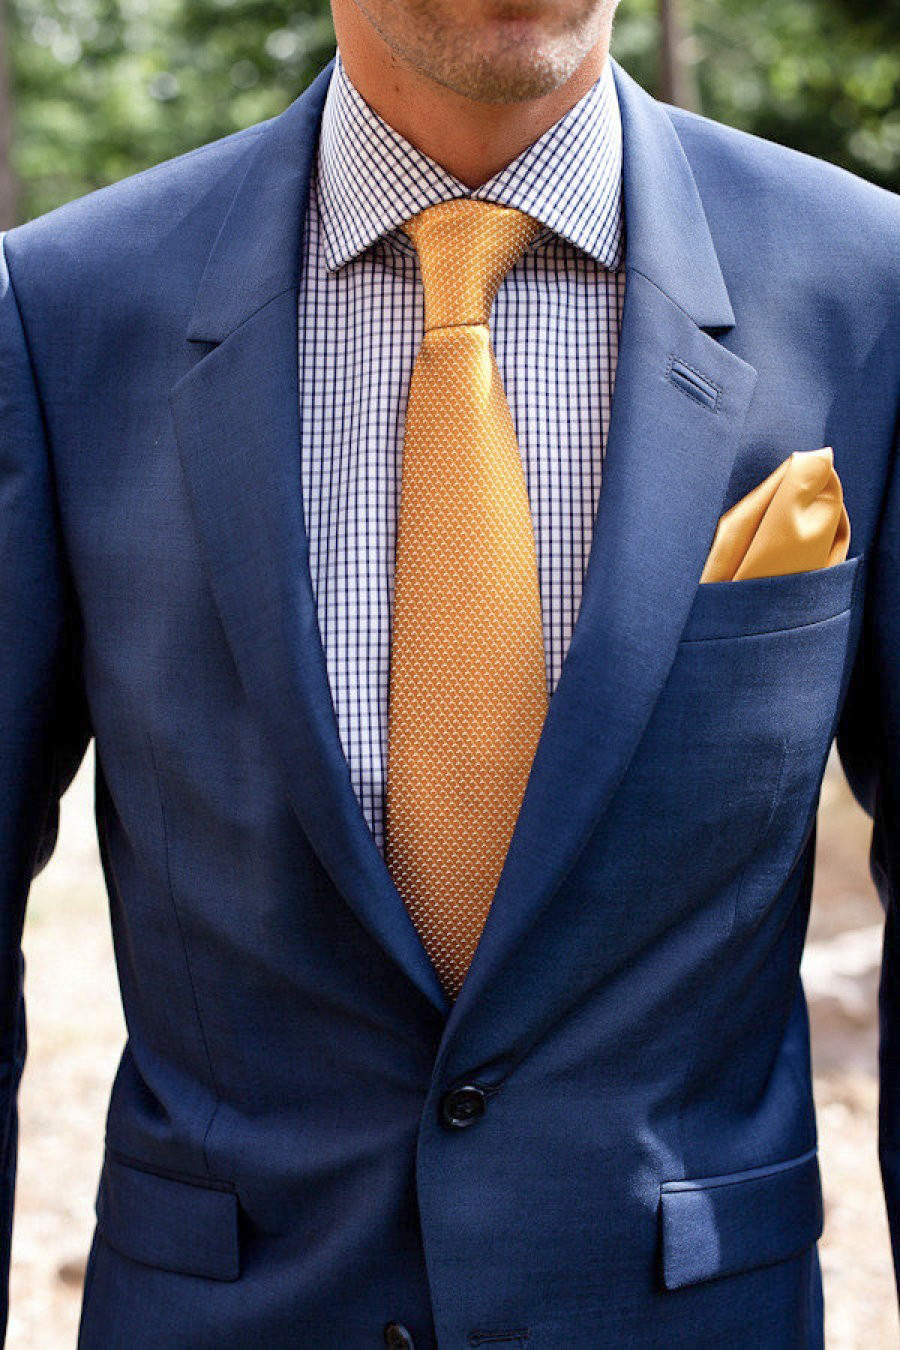 navy suit and checkered shirt with orange pocket square